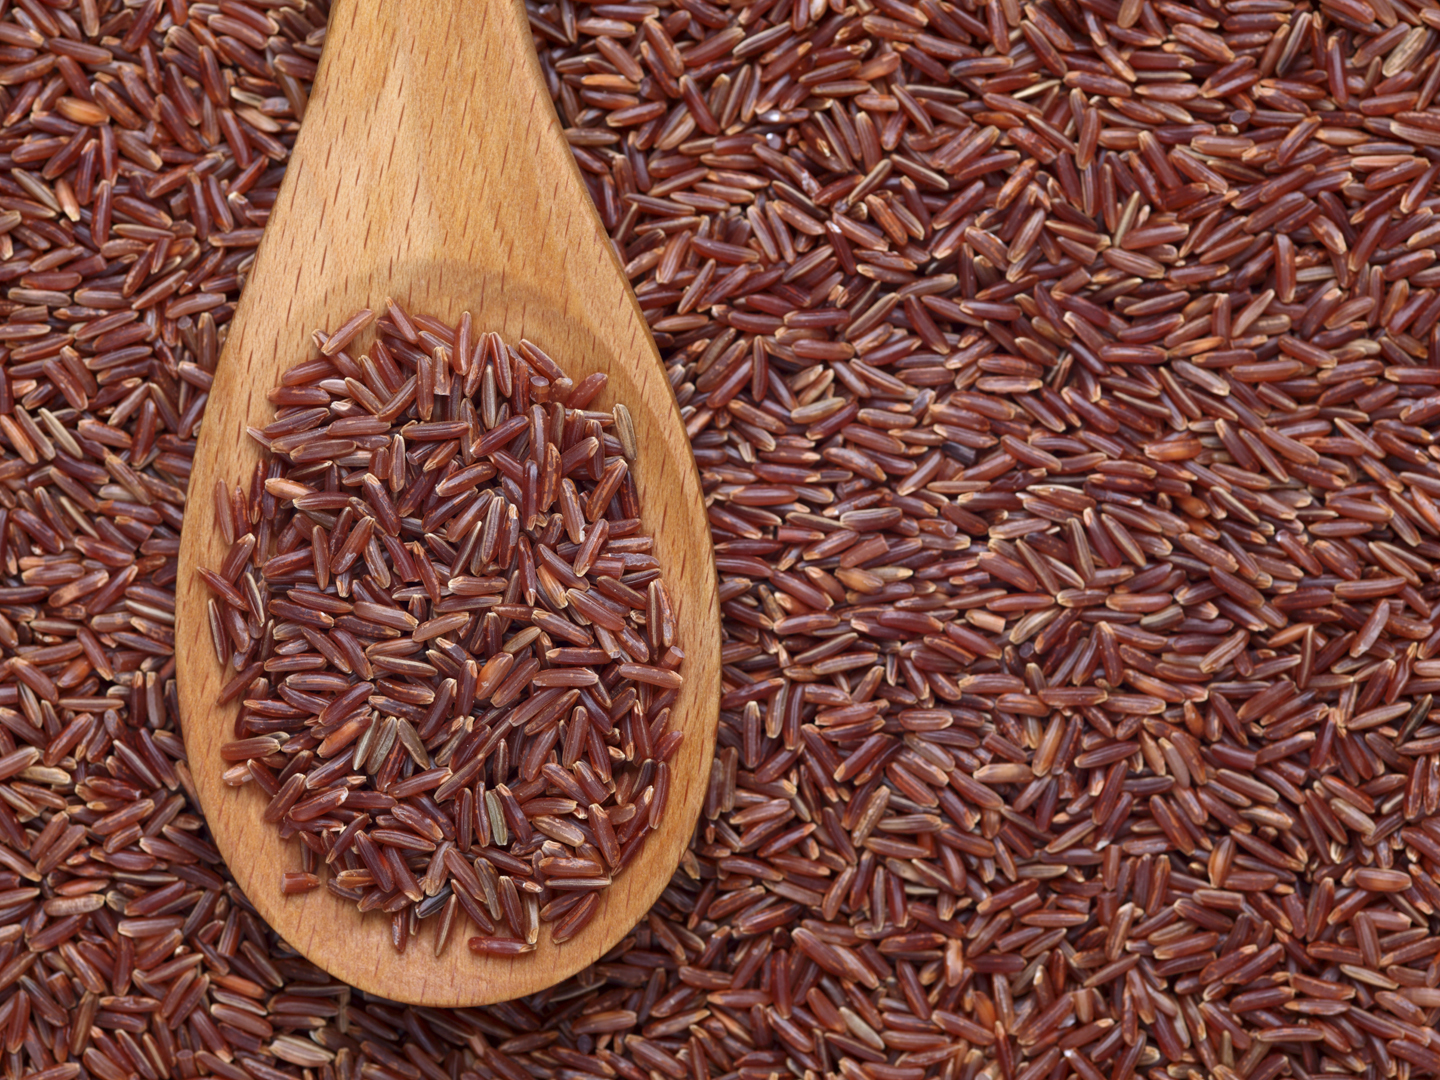 Red Rice Yeast Instead Of Statins